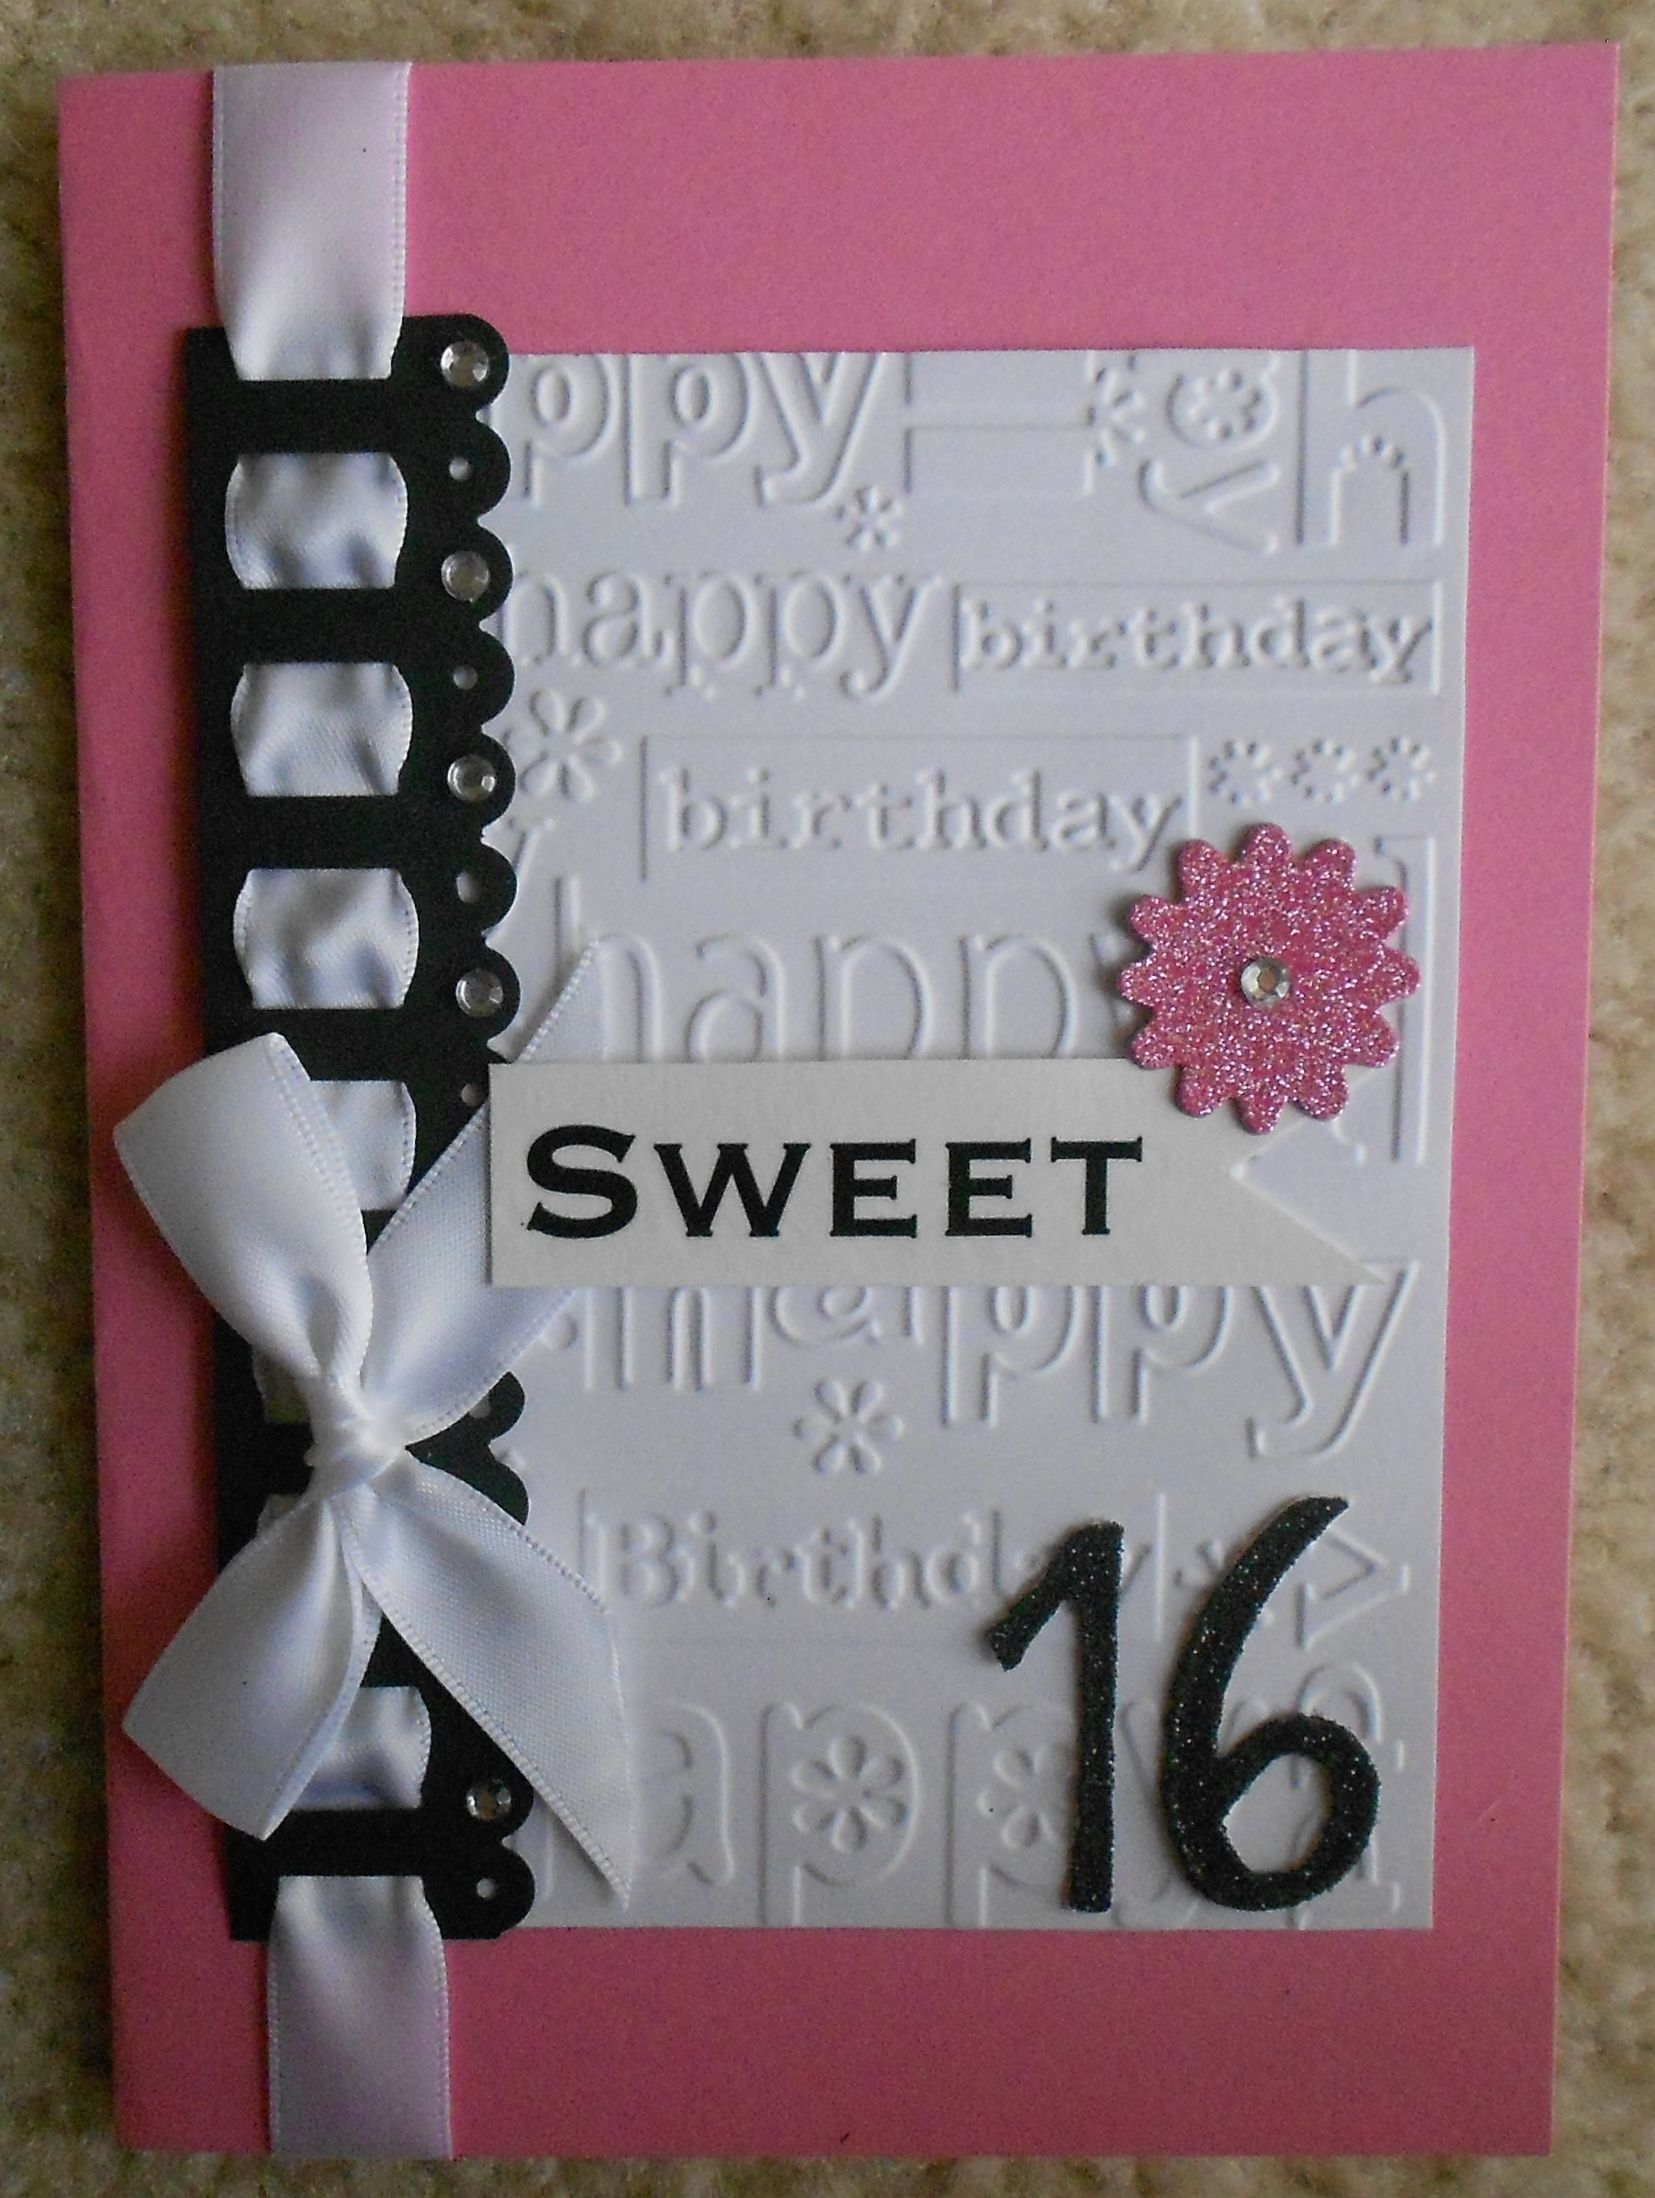 Handmade Sweet 16 Birthday Card 16th Birthday Card Cool Birthday Cards Birthday Cards